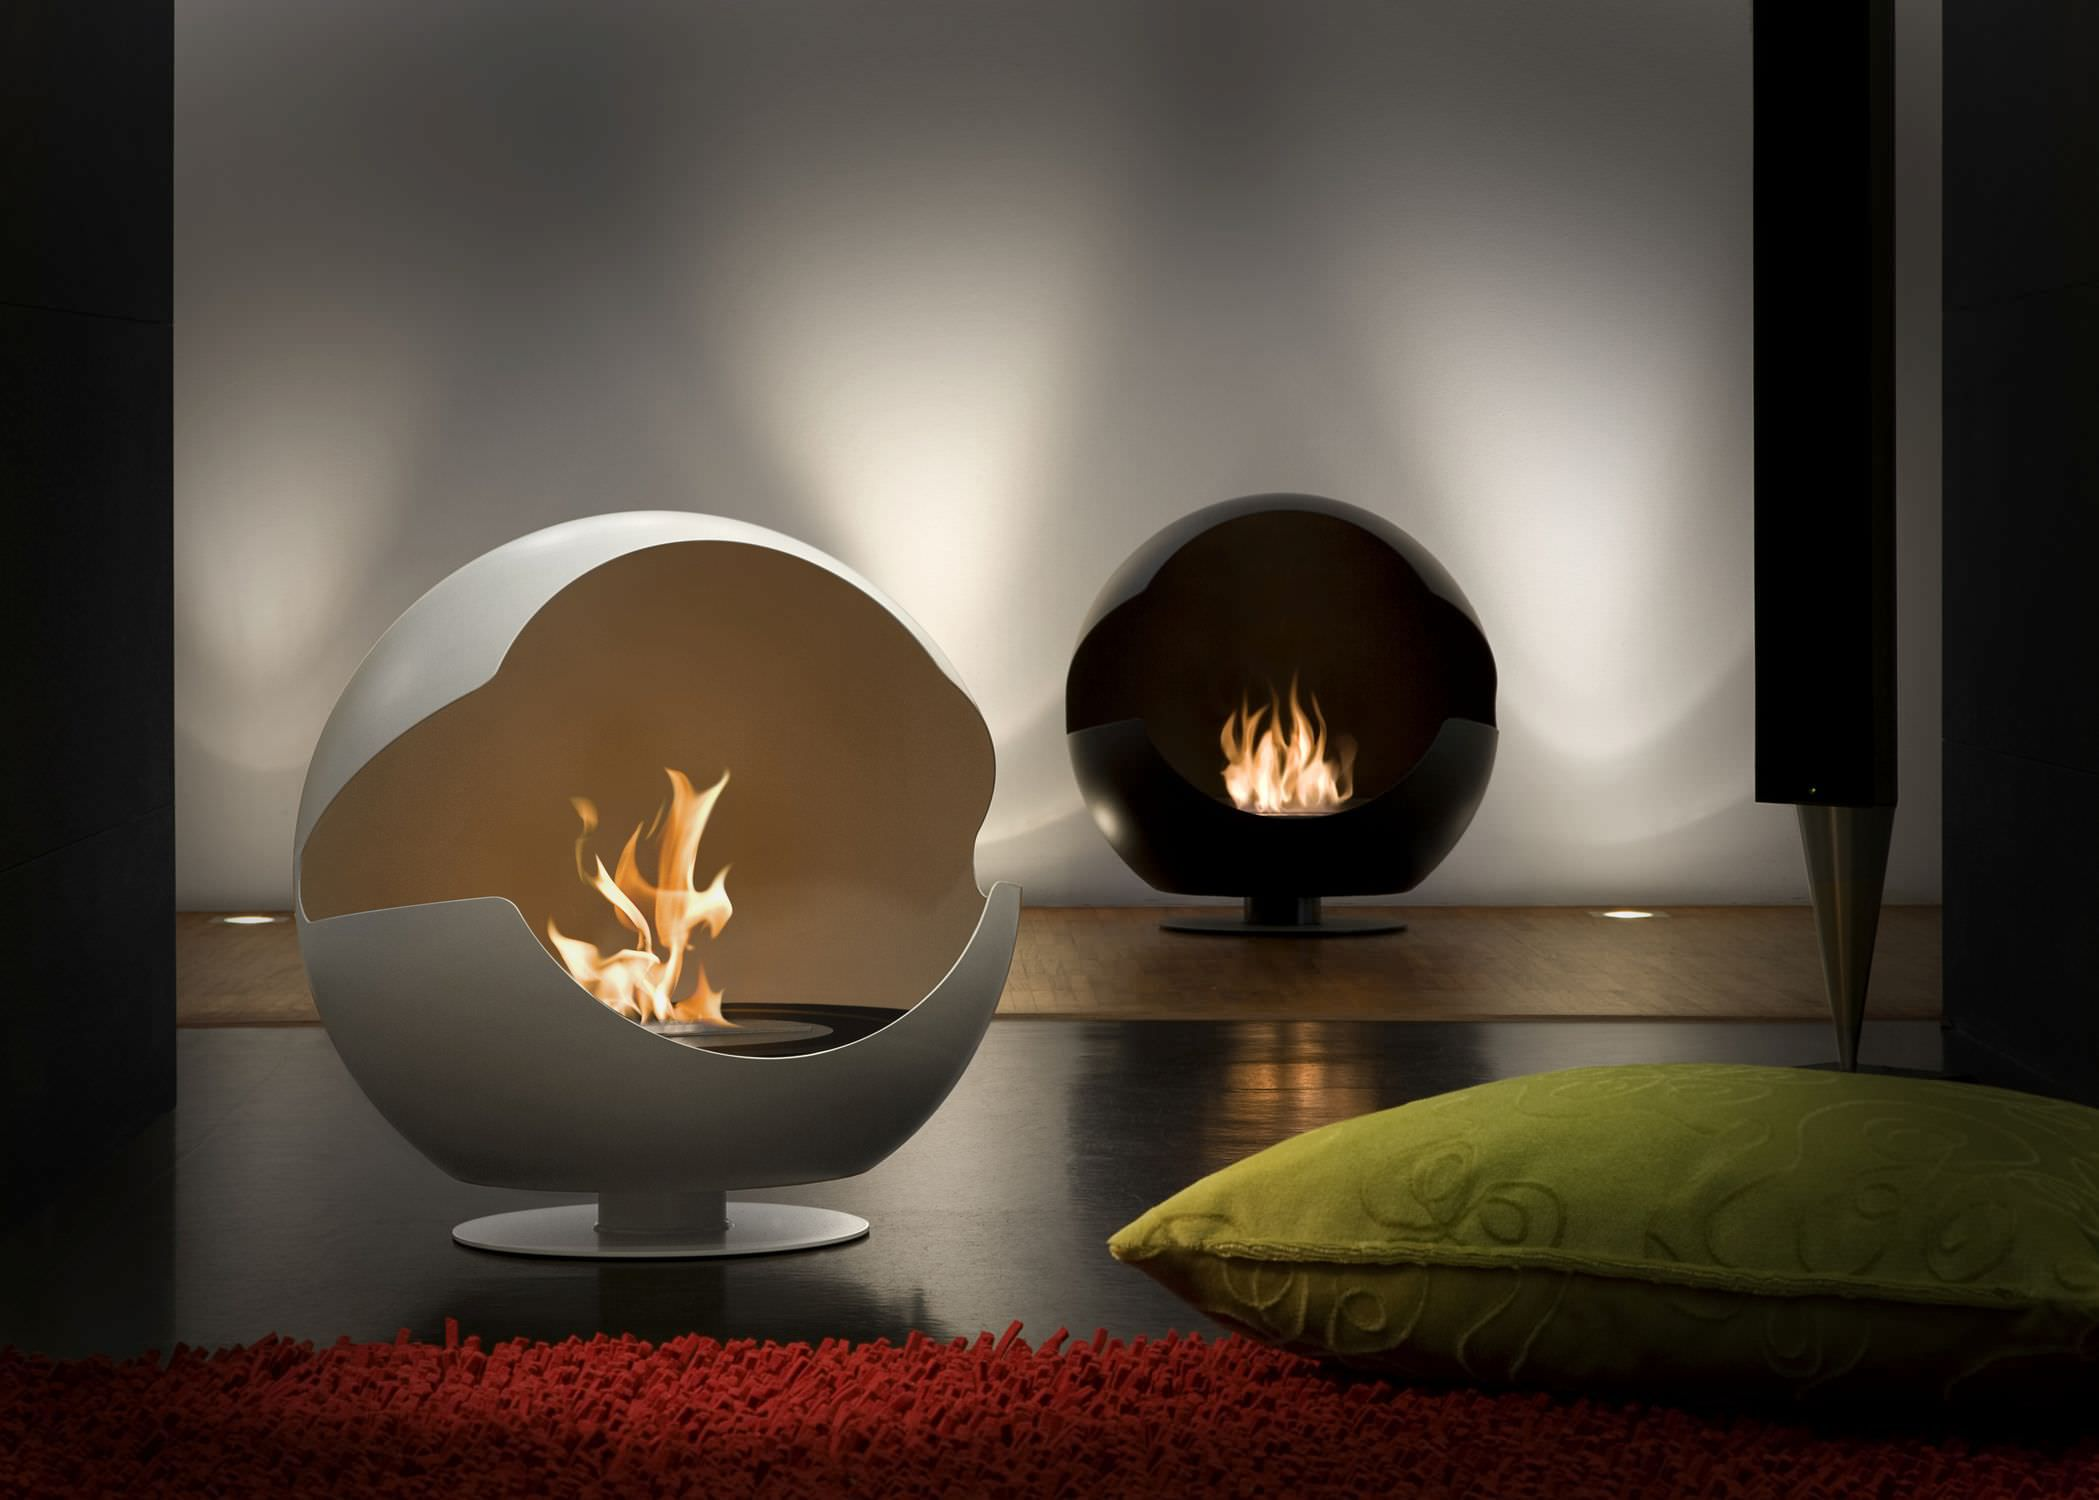 bioethanol fireplaces self supporting central open hearth 56a8869d3df78cf7729e8dc3